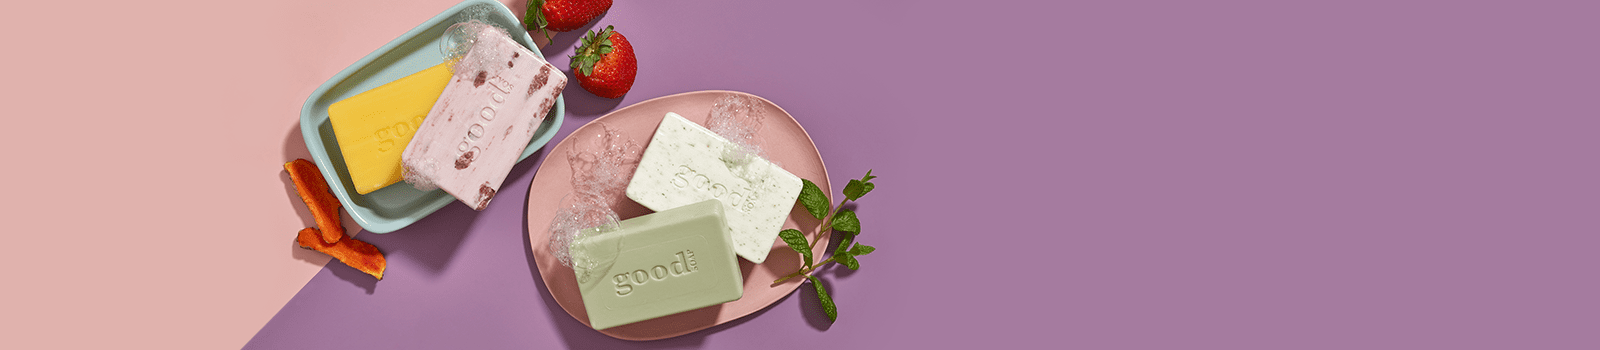 Alaffia's Good Soap bars are triple-milled, gluten-free and zero waste. 100% of proceeds go to helping communities and families around the world.